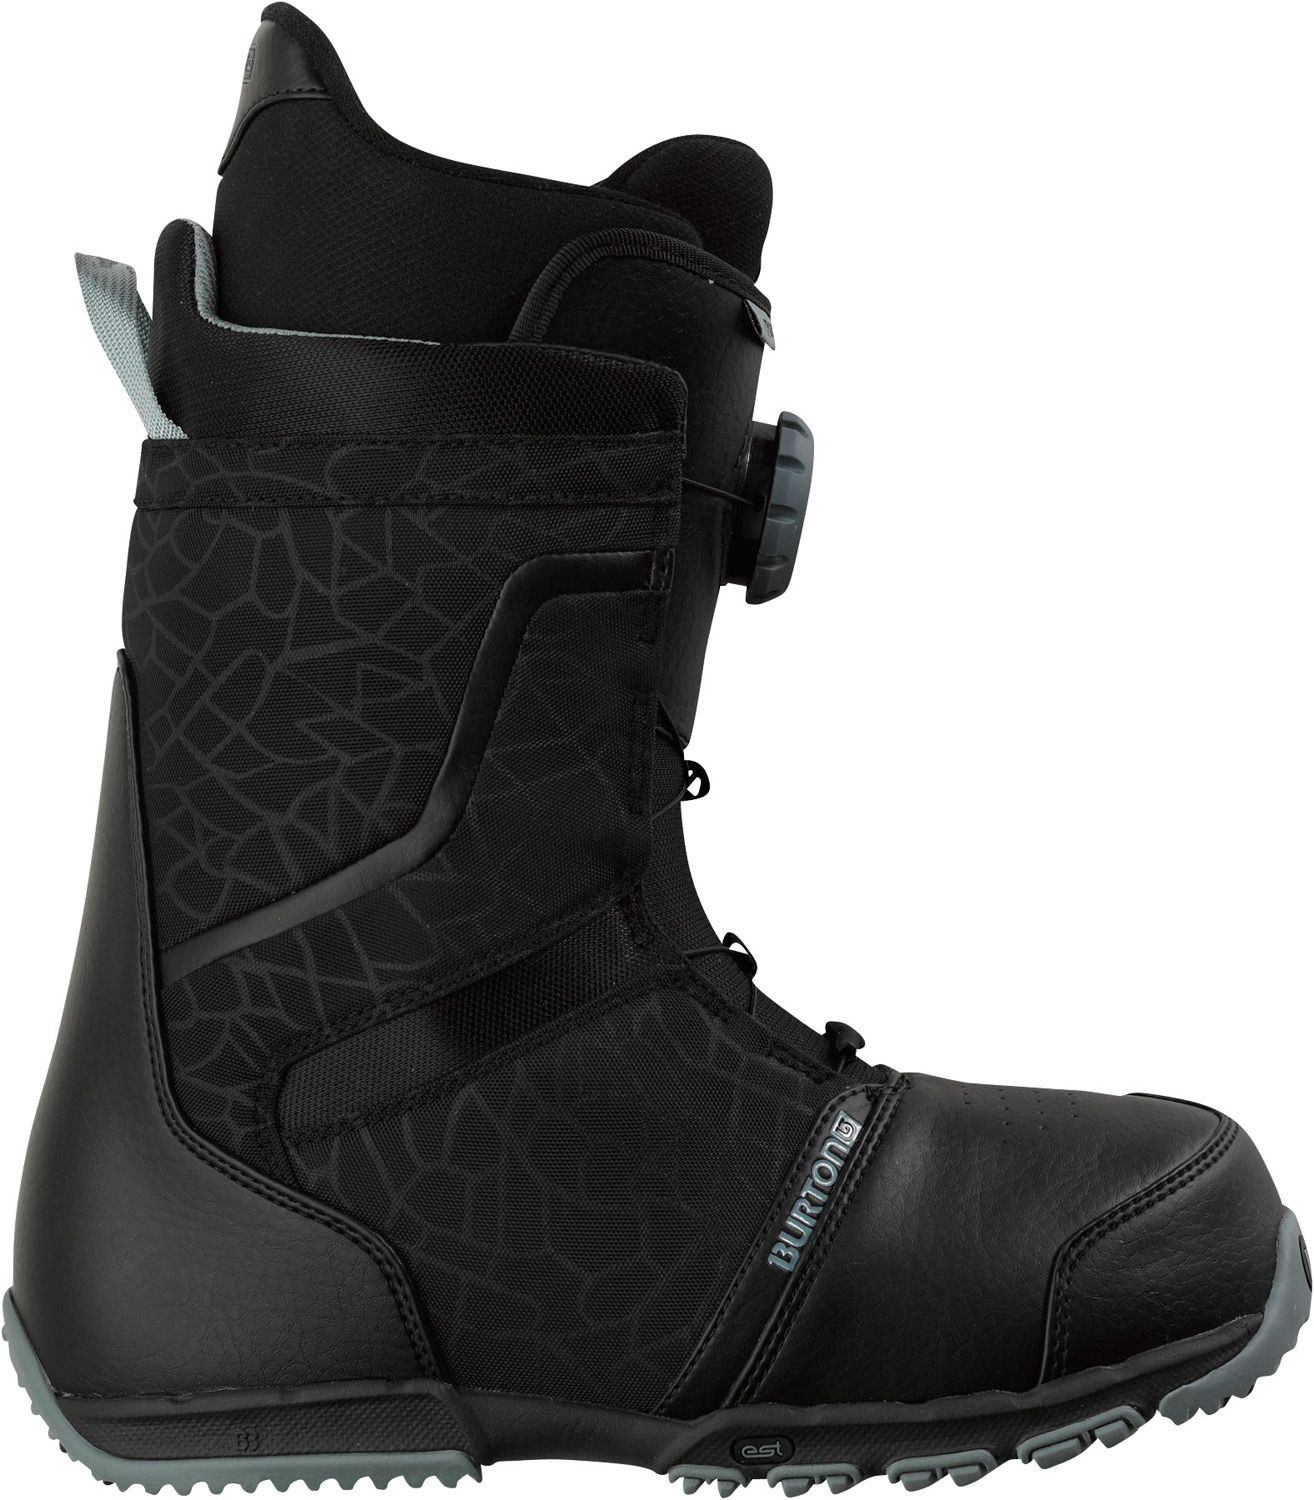 Snowboard The quickest dial up connection.Key Features of the Burton Tyro Snowboard Boots: Support: 4 Shrinkage Footprint Reduction Technology Lacing: NEW Speed Dial Lacing System Liner: Imprint 1 Liner with Integrated Lacing Cushioning: Lightweight, Low-Profile EST Optimized Midsole with B3 Gel Flex and Response: Power Spine Backstay and Medium Flex Thin Profile 3D Molded Tongue Comfort: Total Comfort Construction, Snow-Proof Internal Gusset, and Level 1 Molded EVA Footbed - $139.95